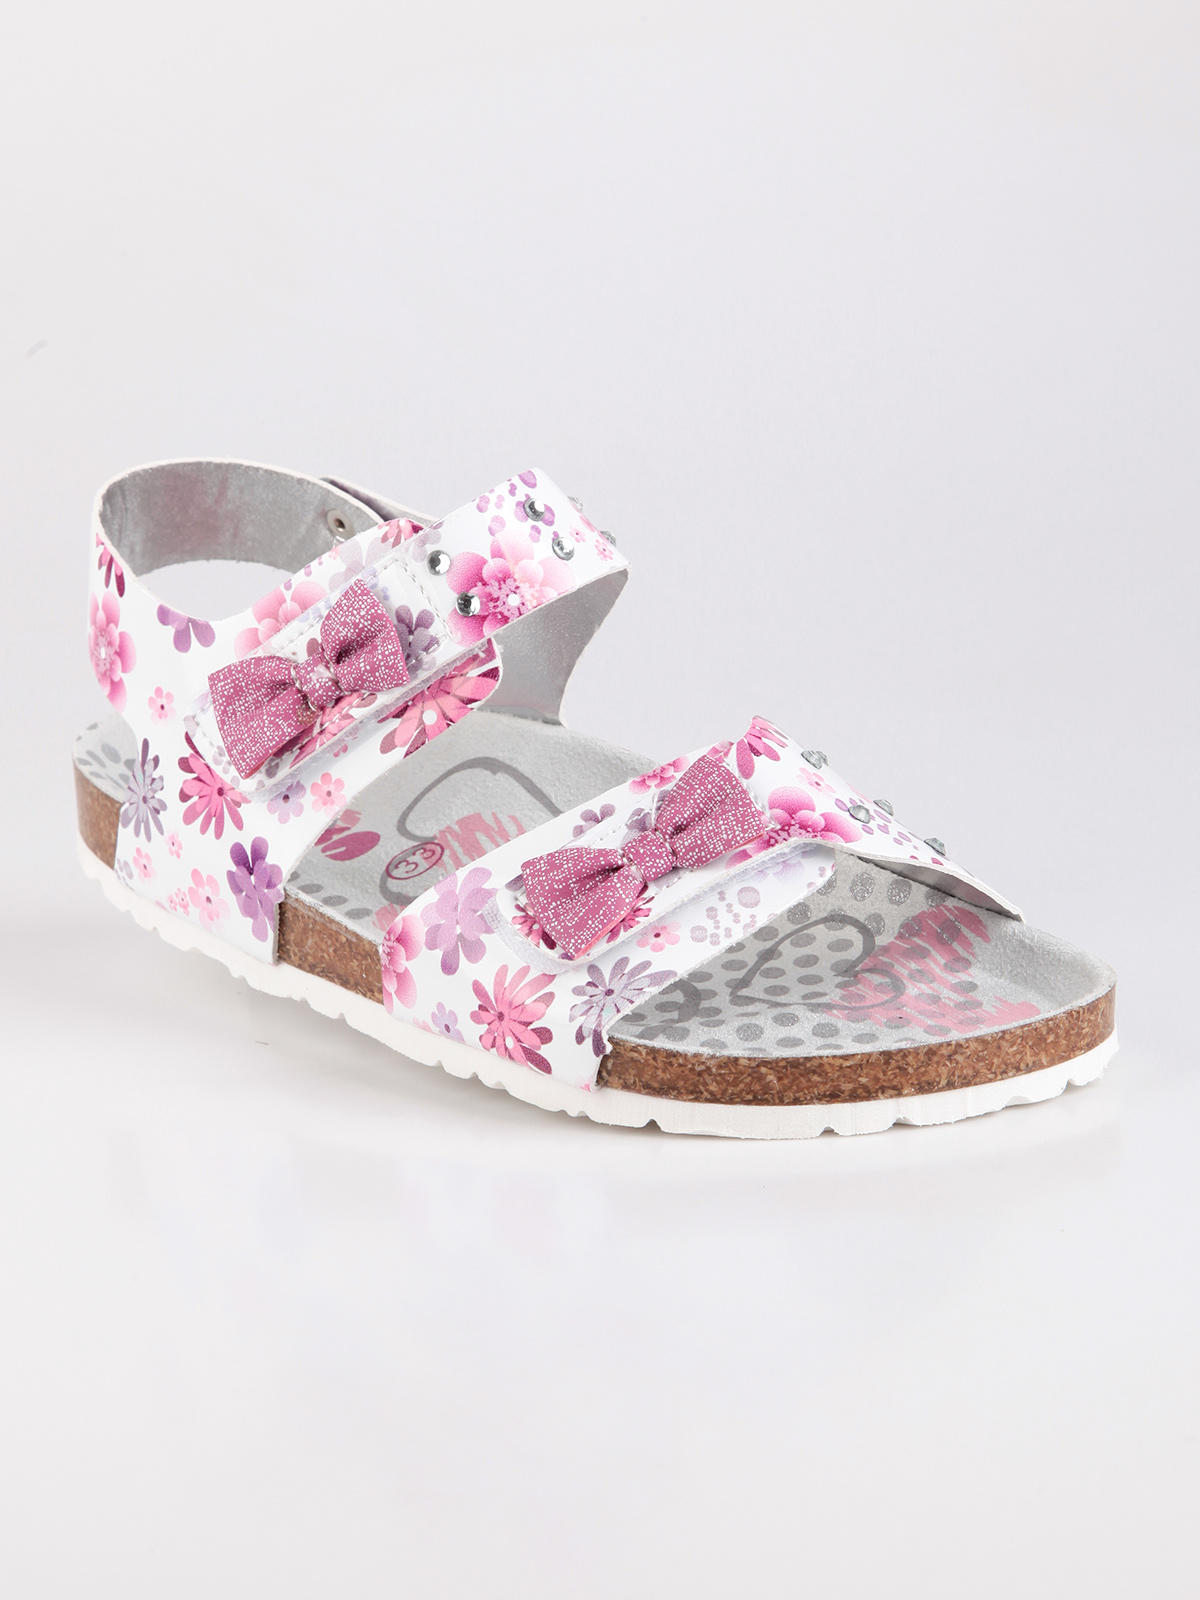 ACE Open-toed Sandals With Print Flowers And Rhinestone